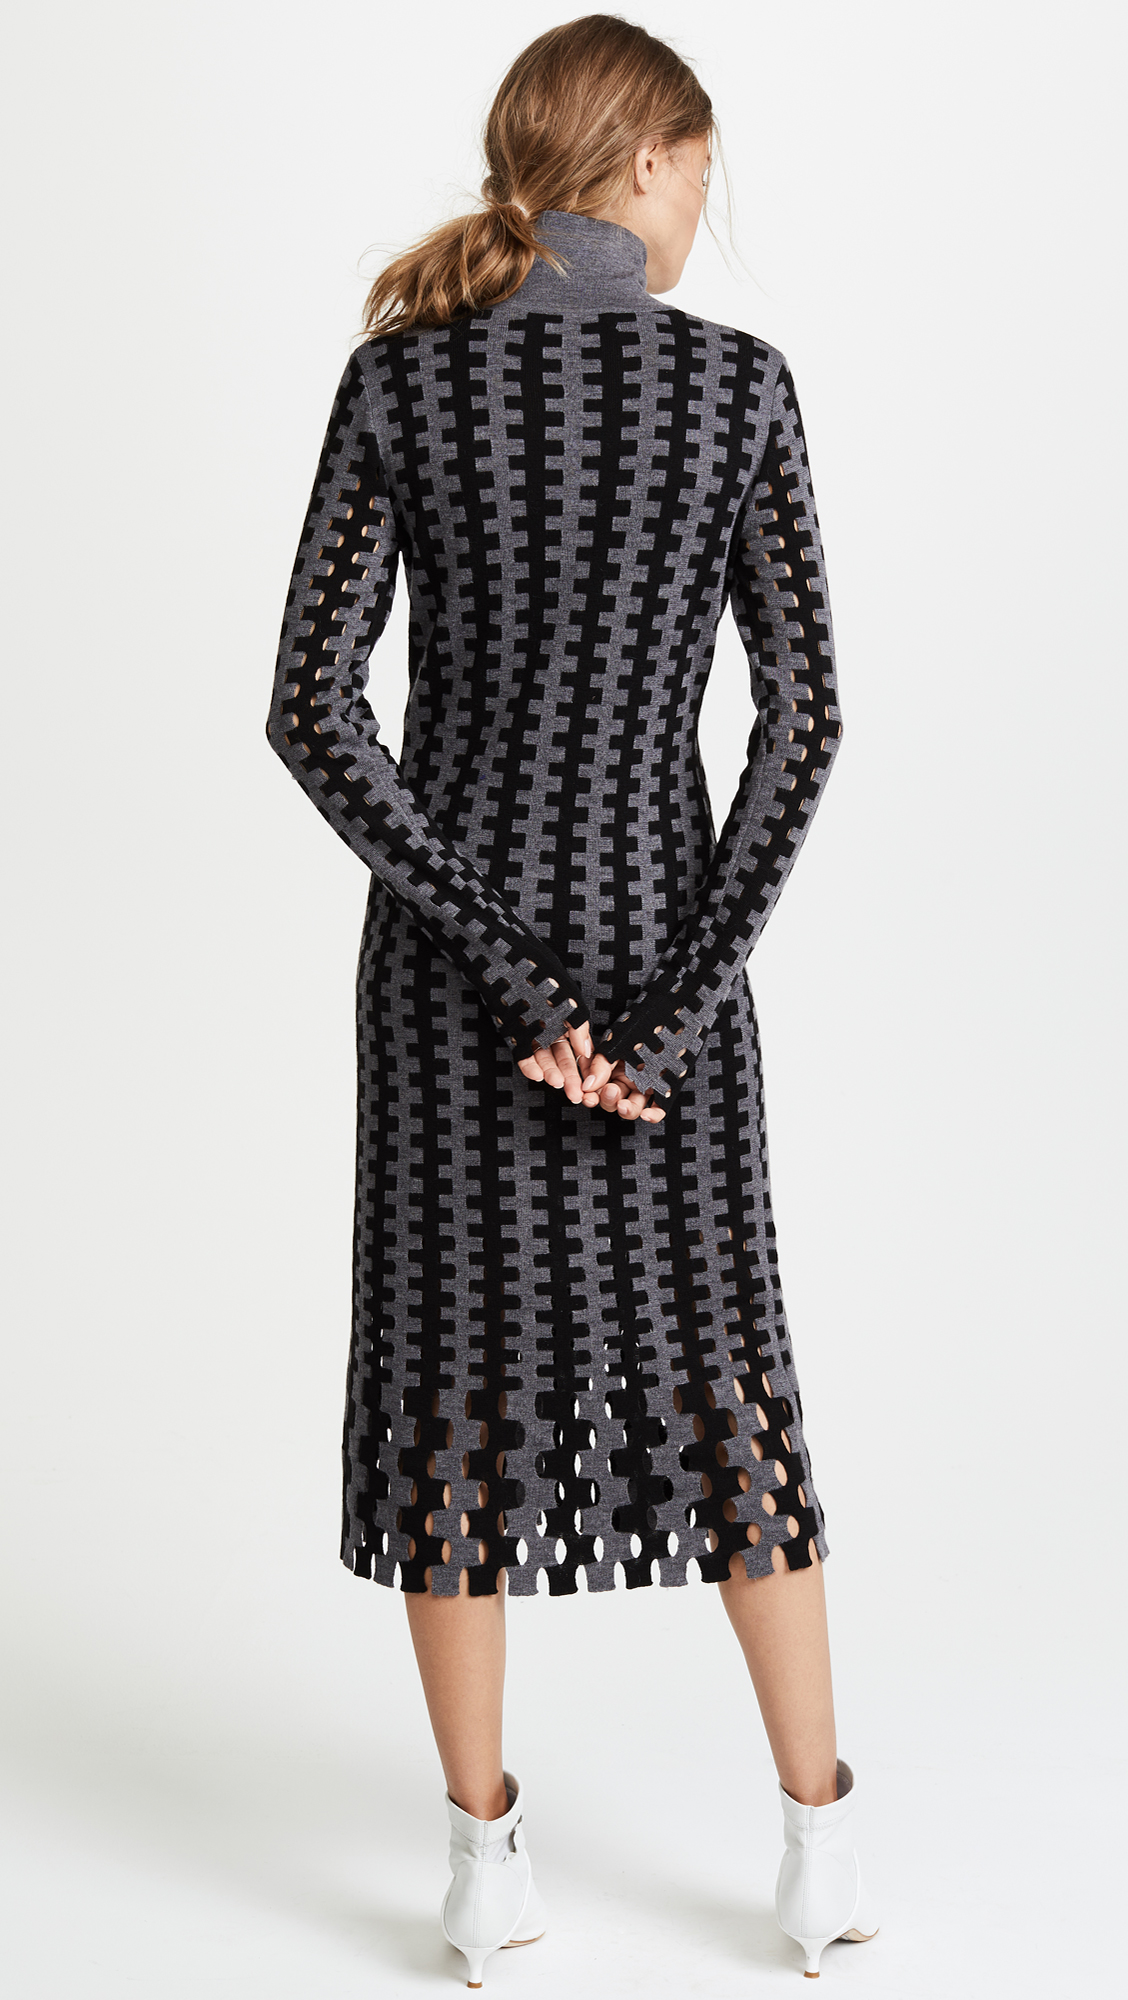 dbdbb8d5c7ff Diane von Furstenberg Turtleneck Knit Midi Dress